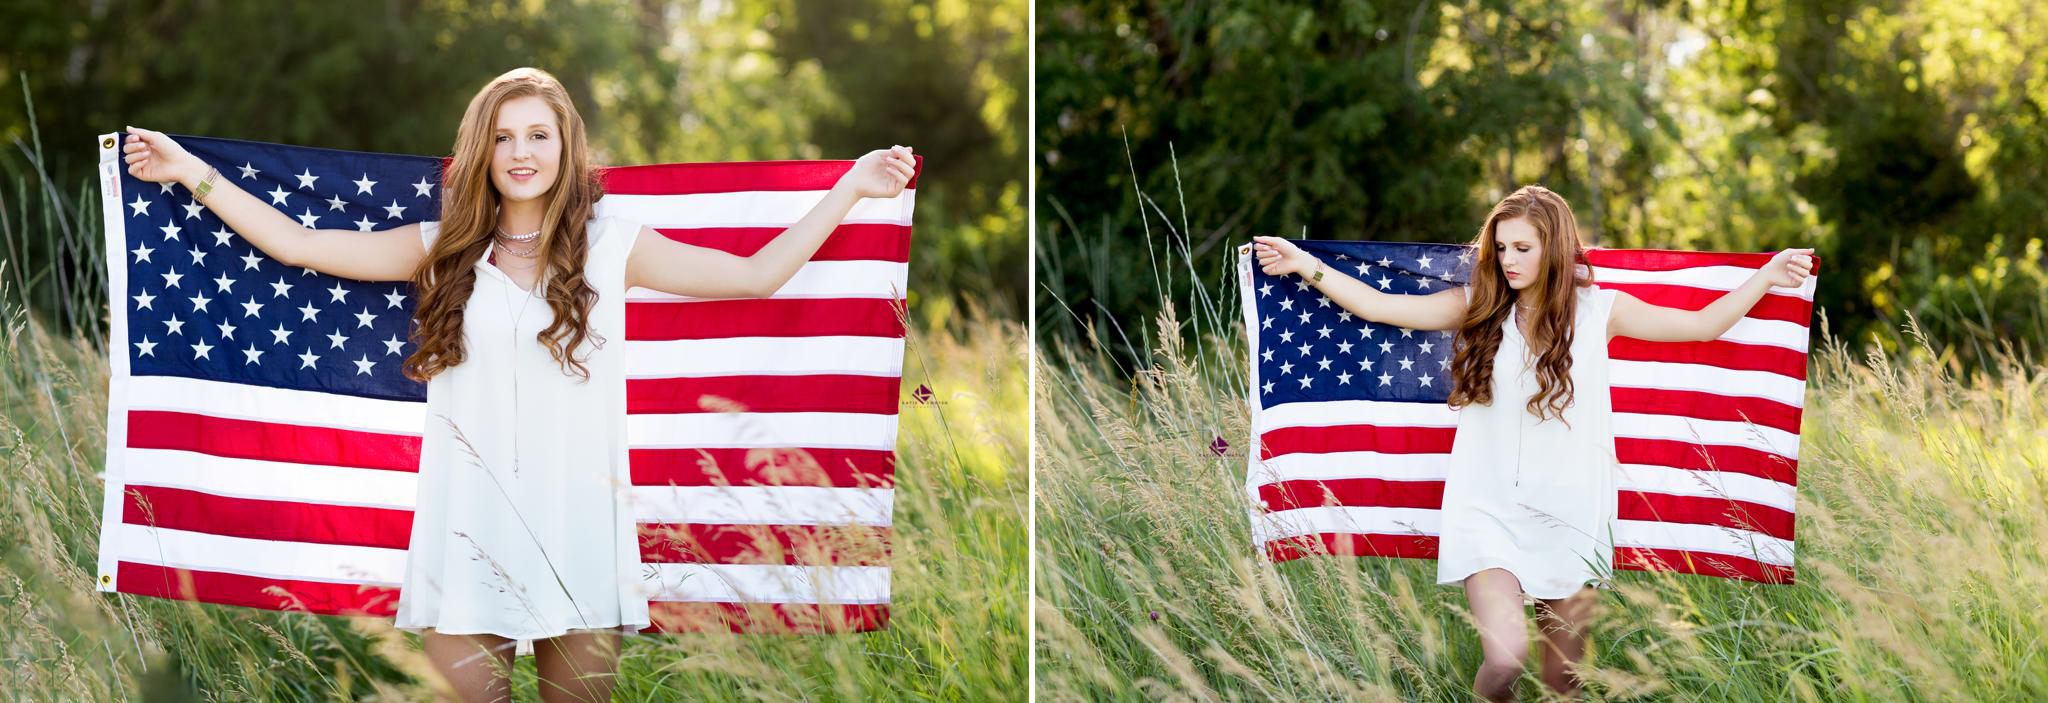 red headed senior in a white dress with a thin silver necklace standing in front of an American flag in a field of tall green grass